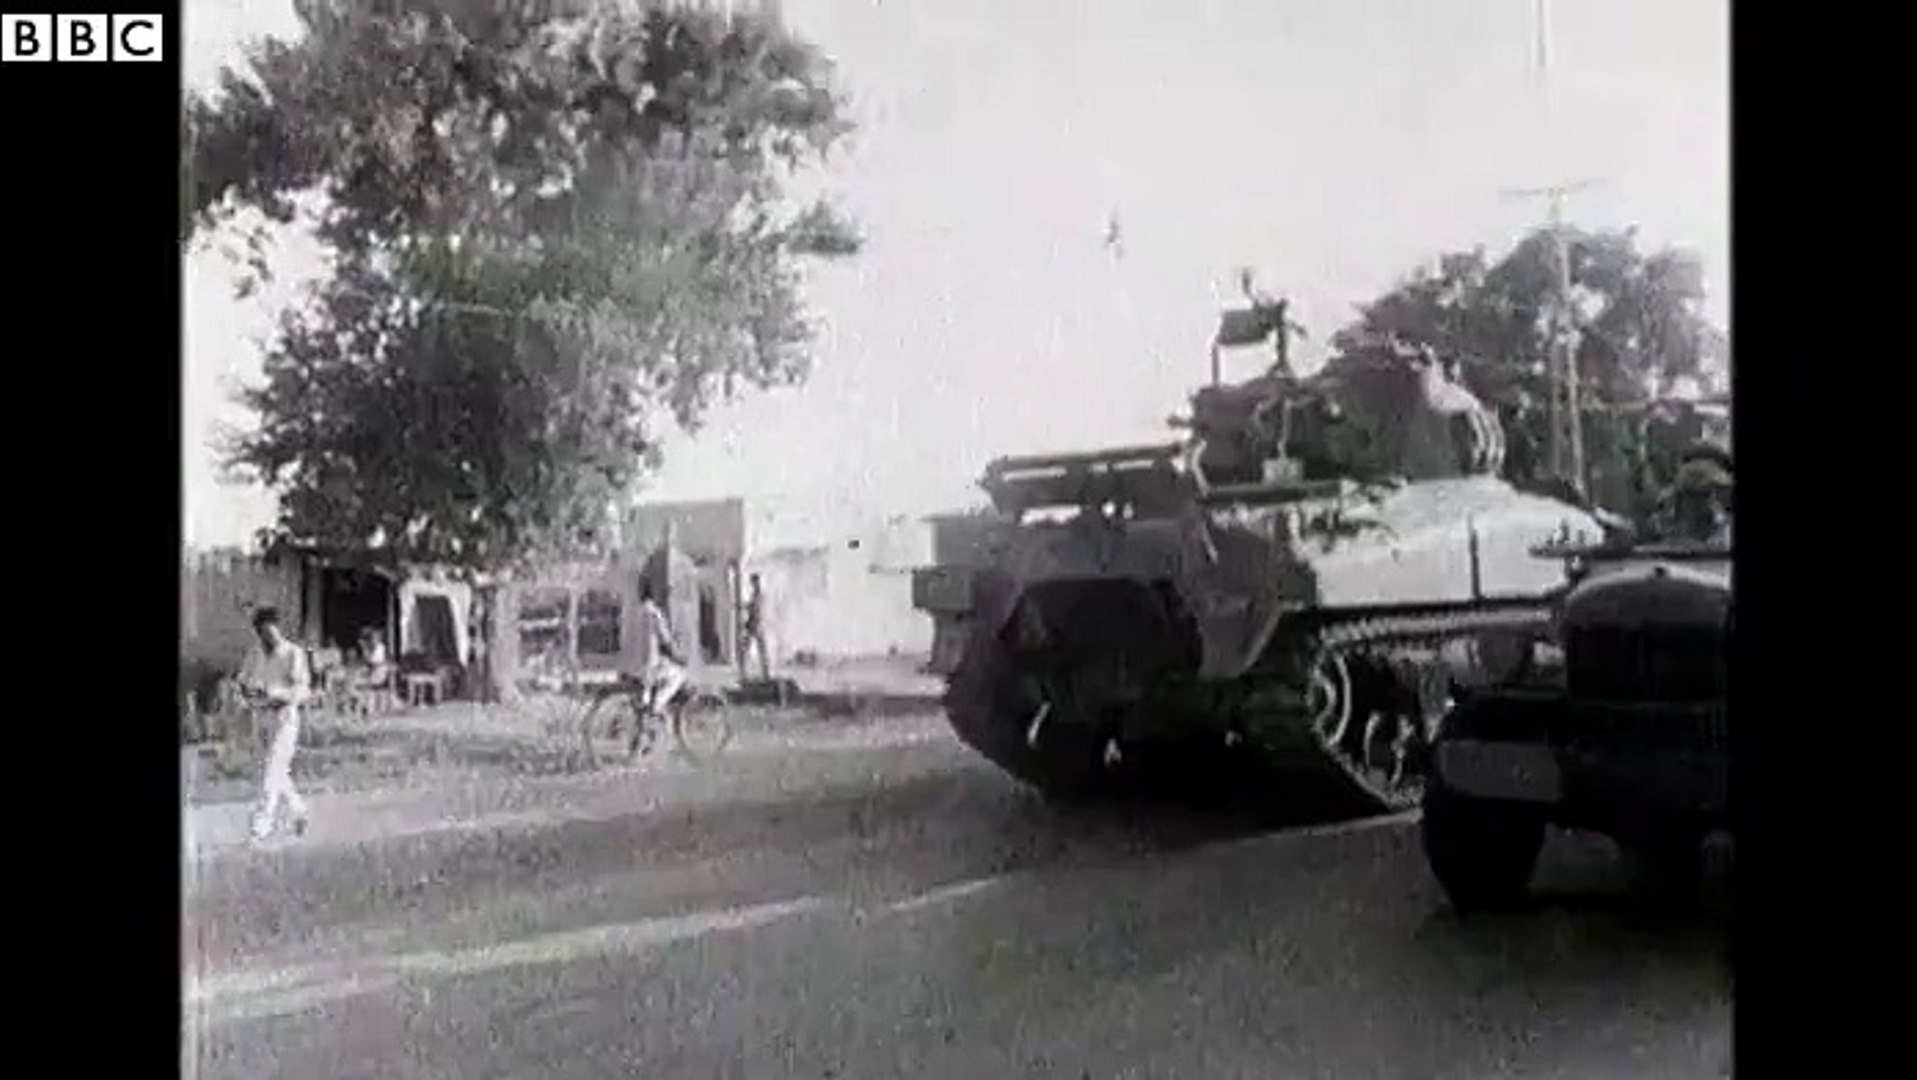 How BBC covered 1965 India-Pakistan war at the time - BBC News